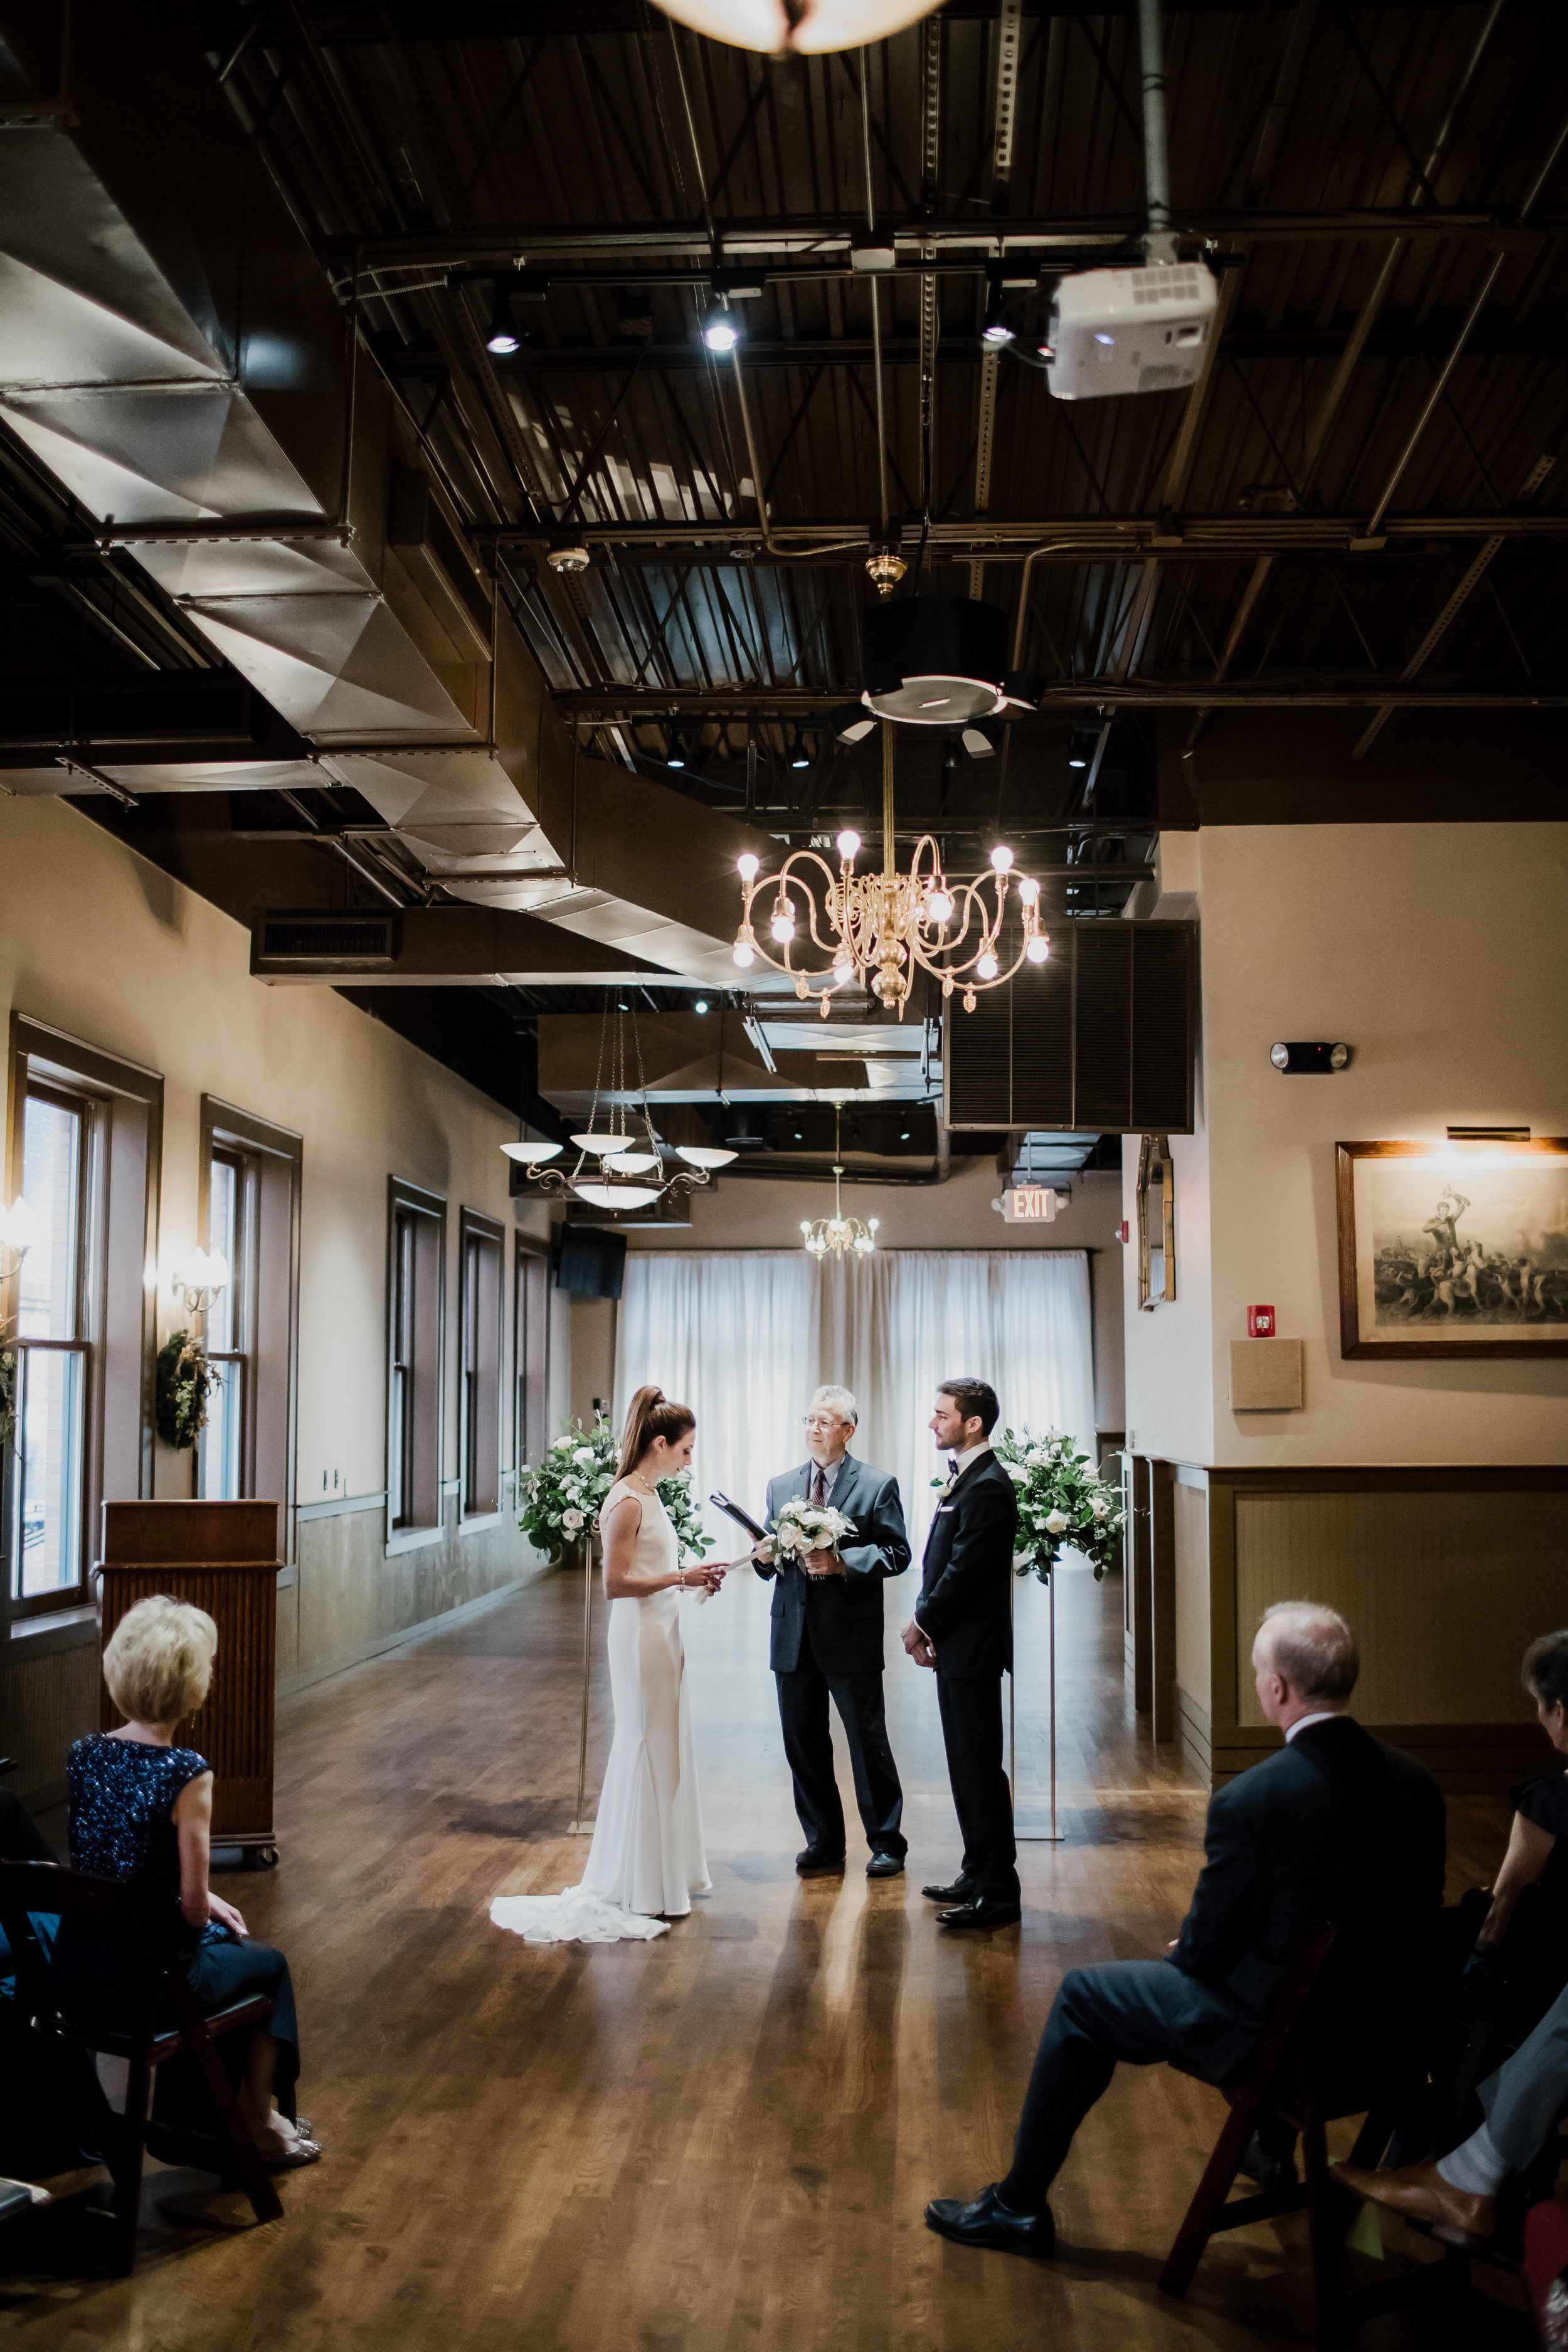 thecarrsphotography_emily_andy_wedding_0242.jpg